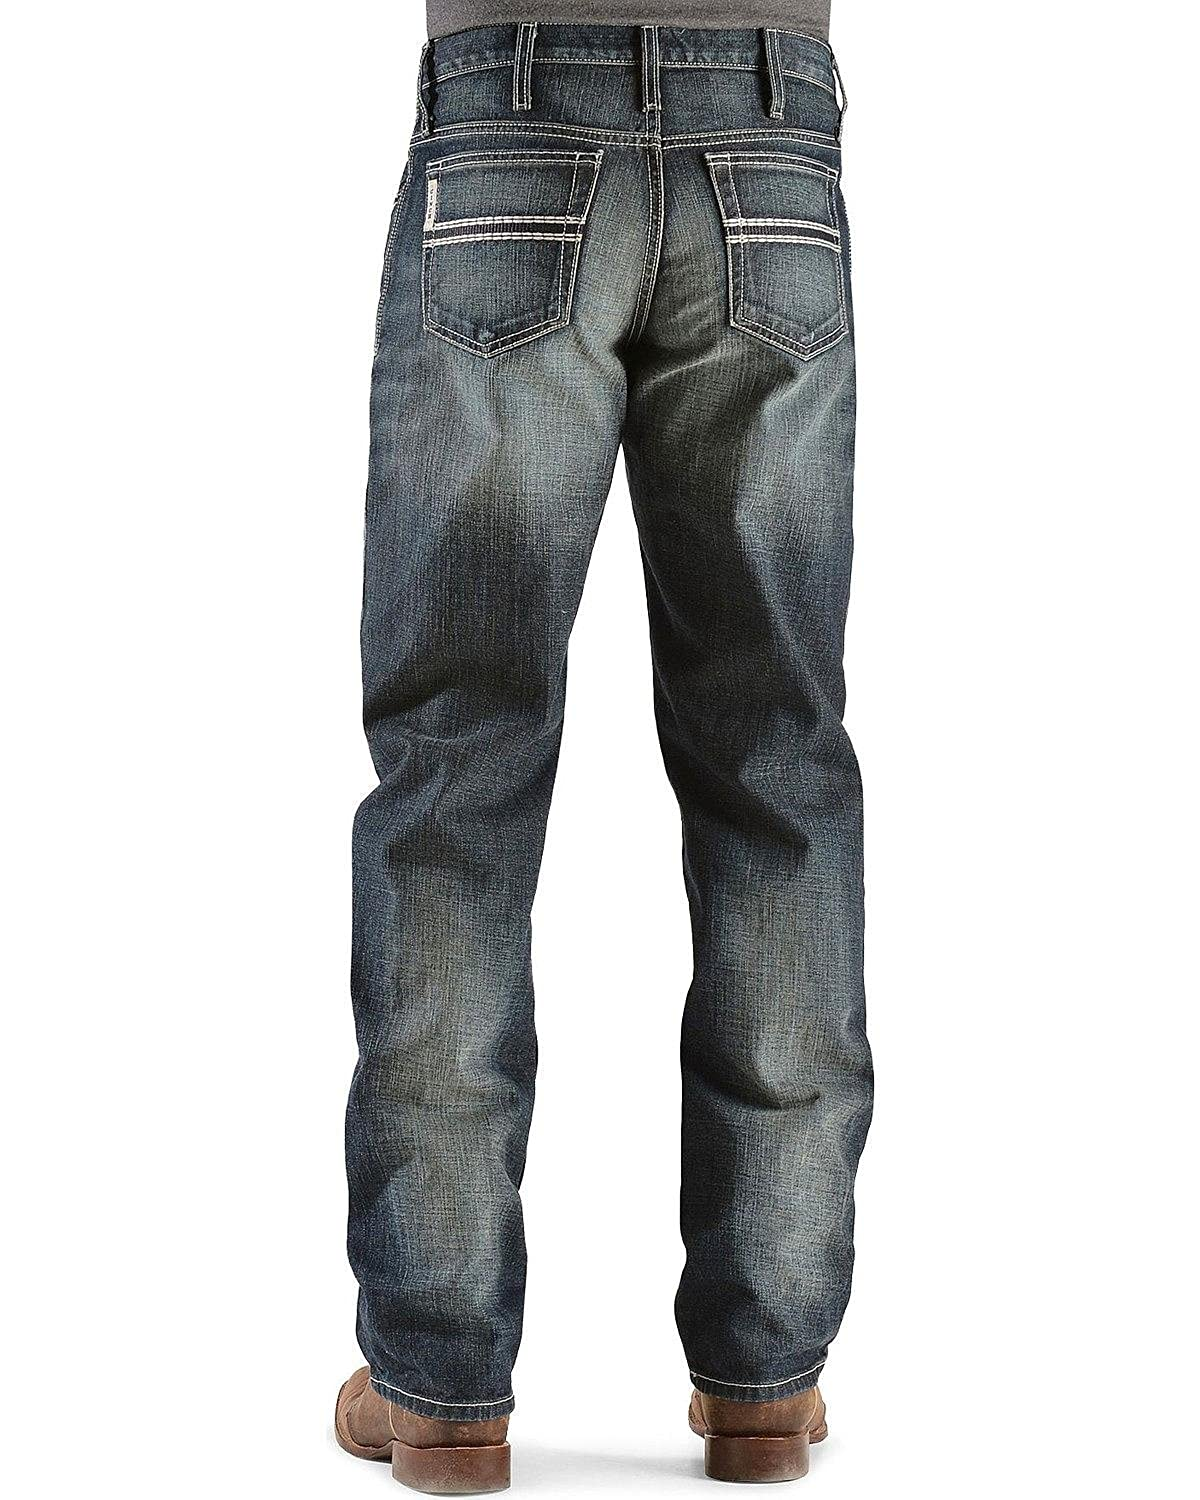 Cinch Mens White Label Relaxed Fit Mid-Rise Jeans Dark Stonewash Dark Stone 31W x 34L